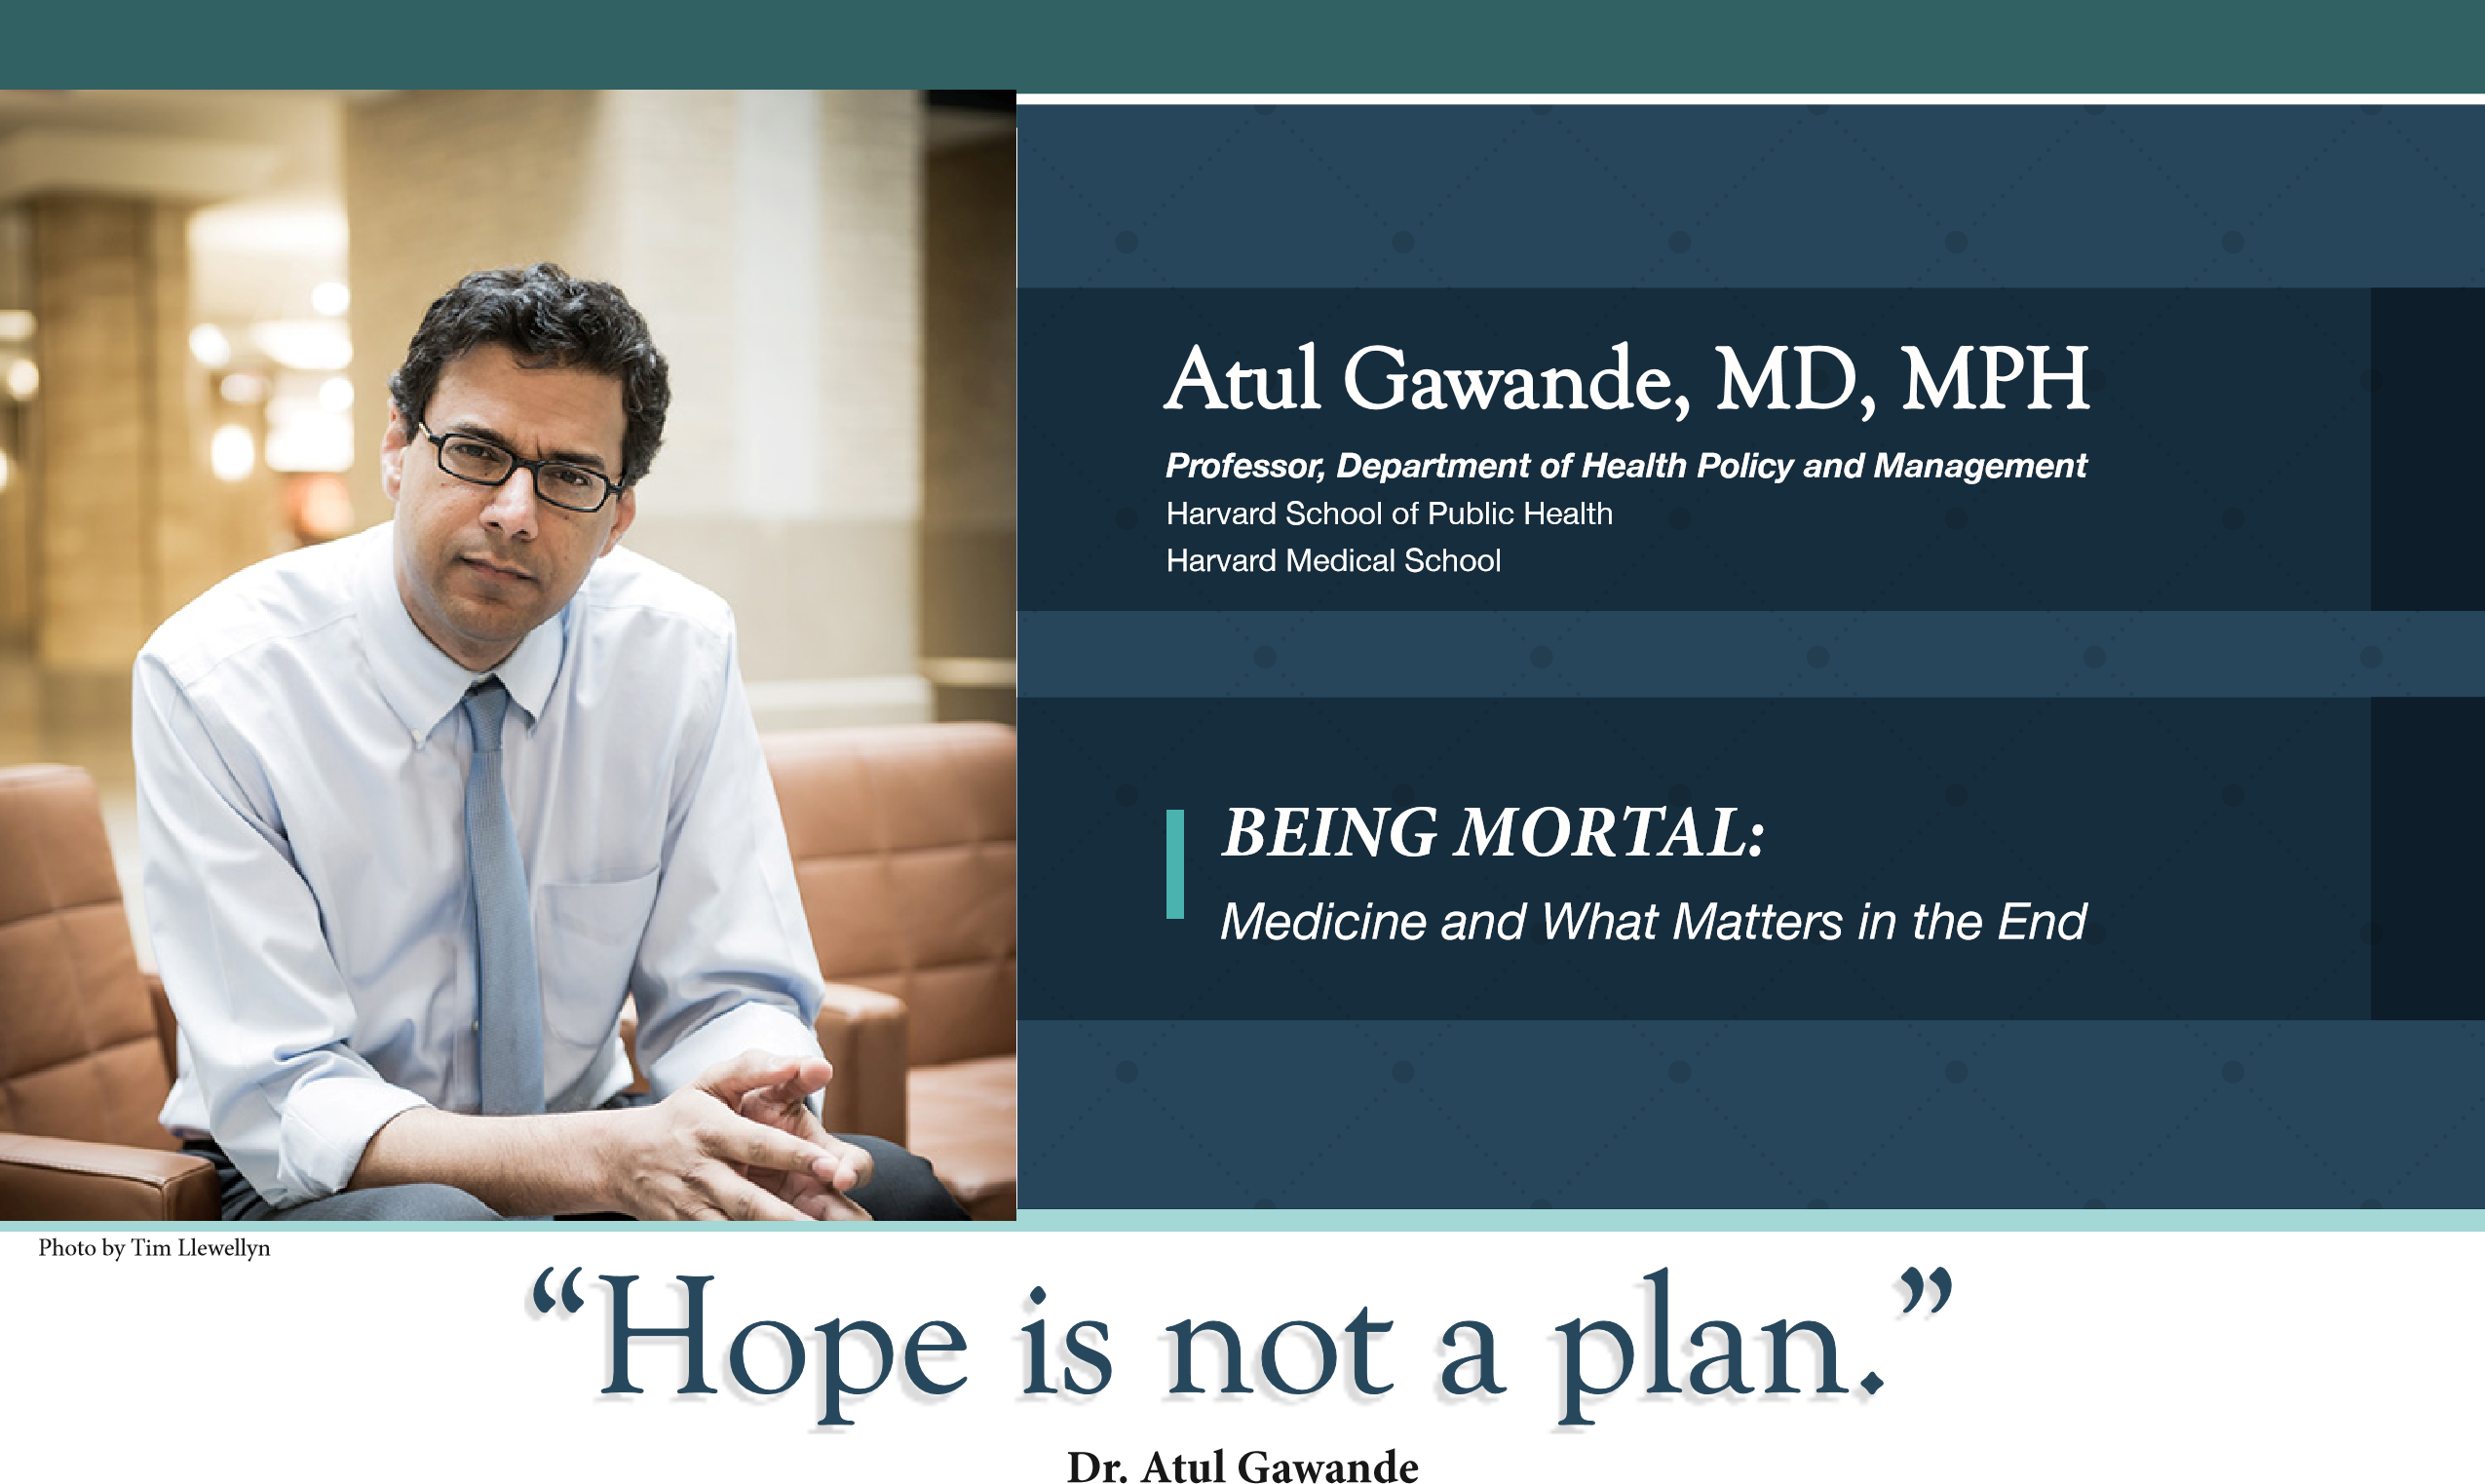 Being Mortal by Atul Gawande: Documentary and Discussion